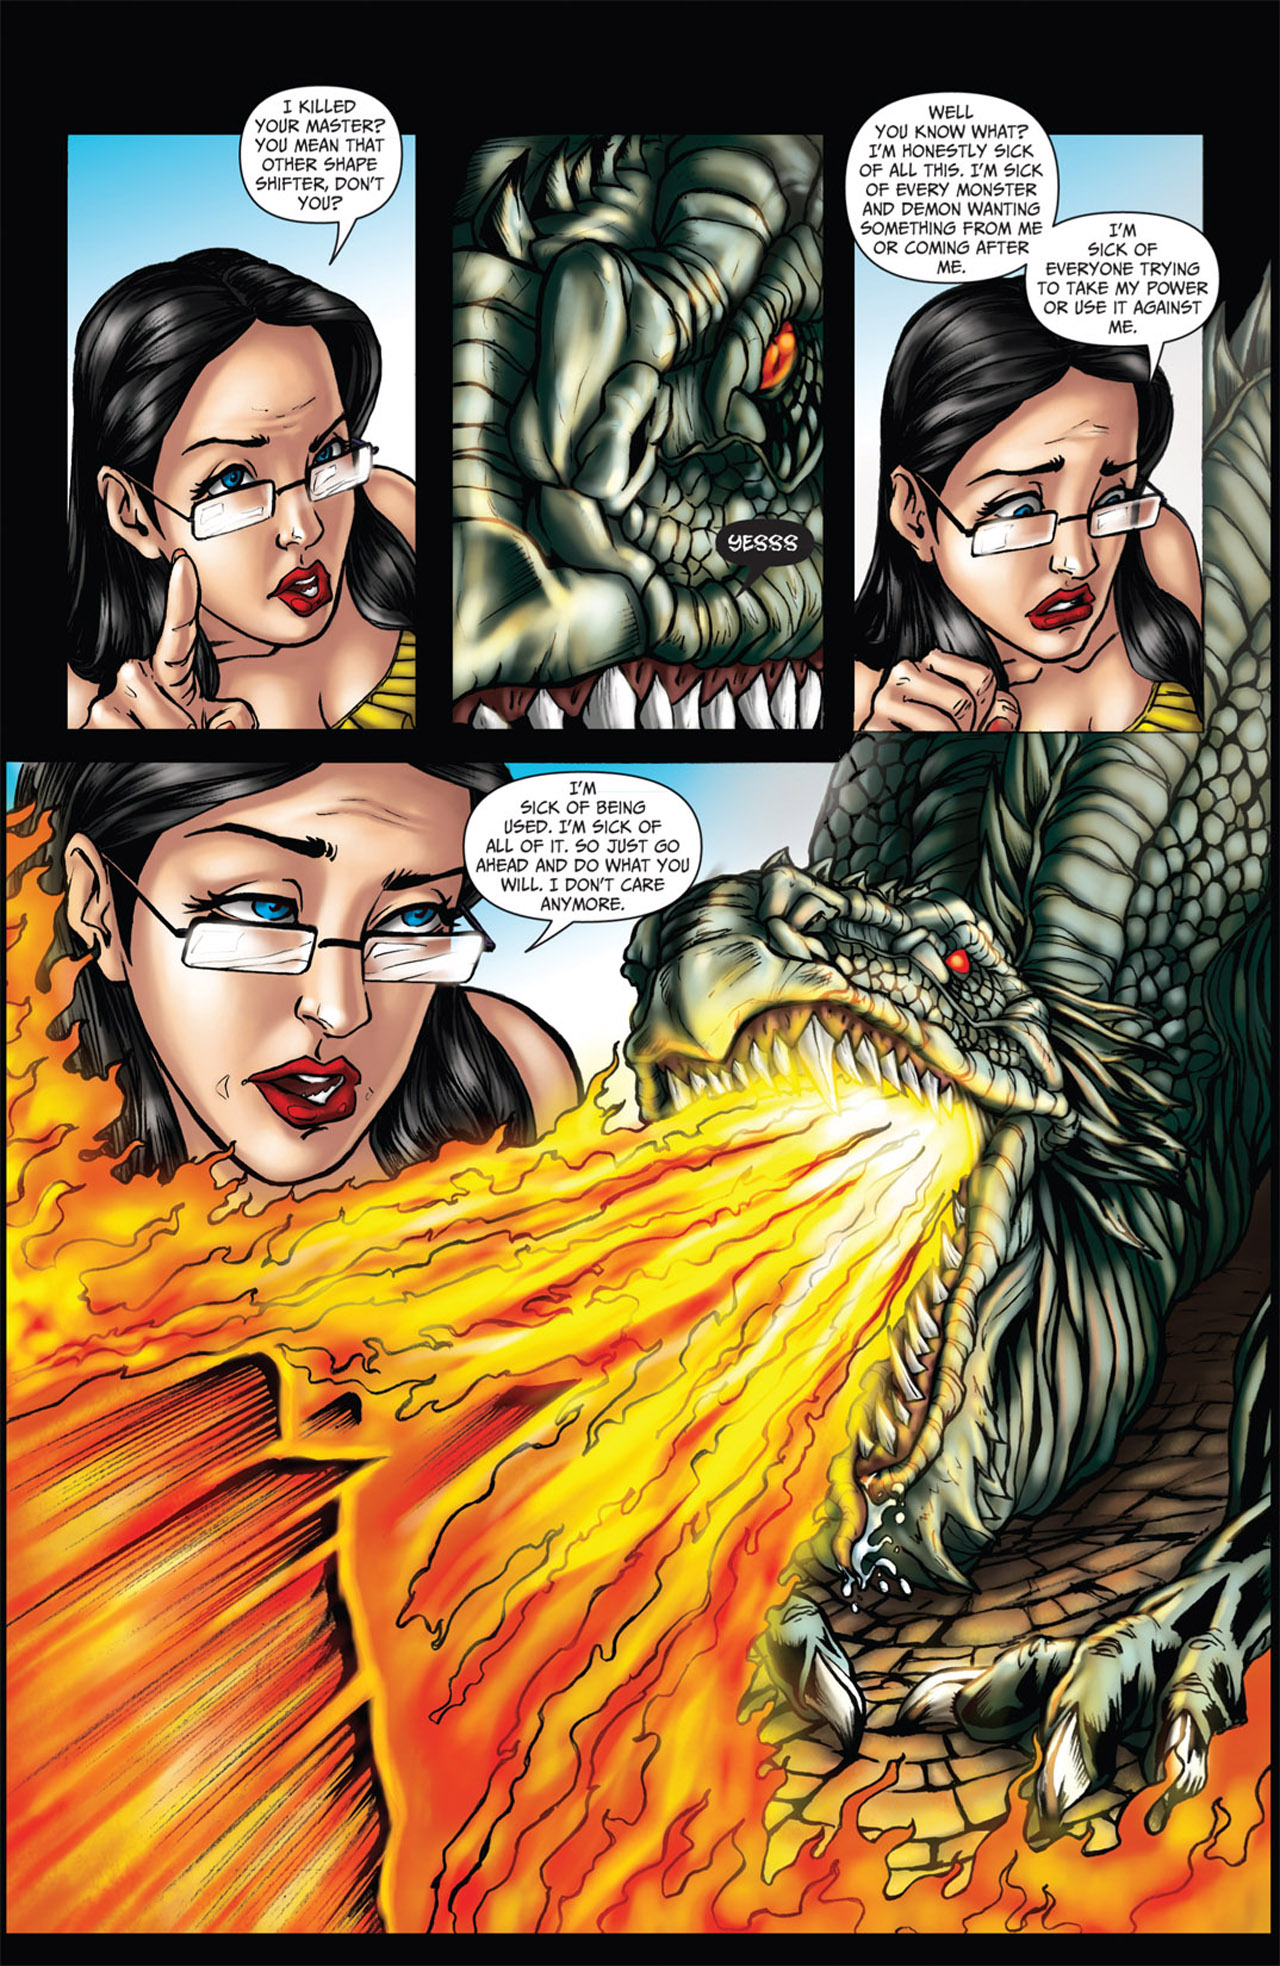 Grimm Fairy Tales (2005) Issue #61 #64 - English 13